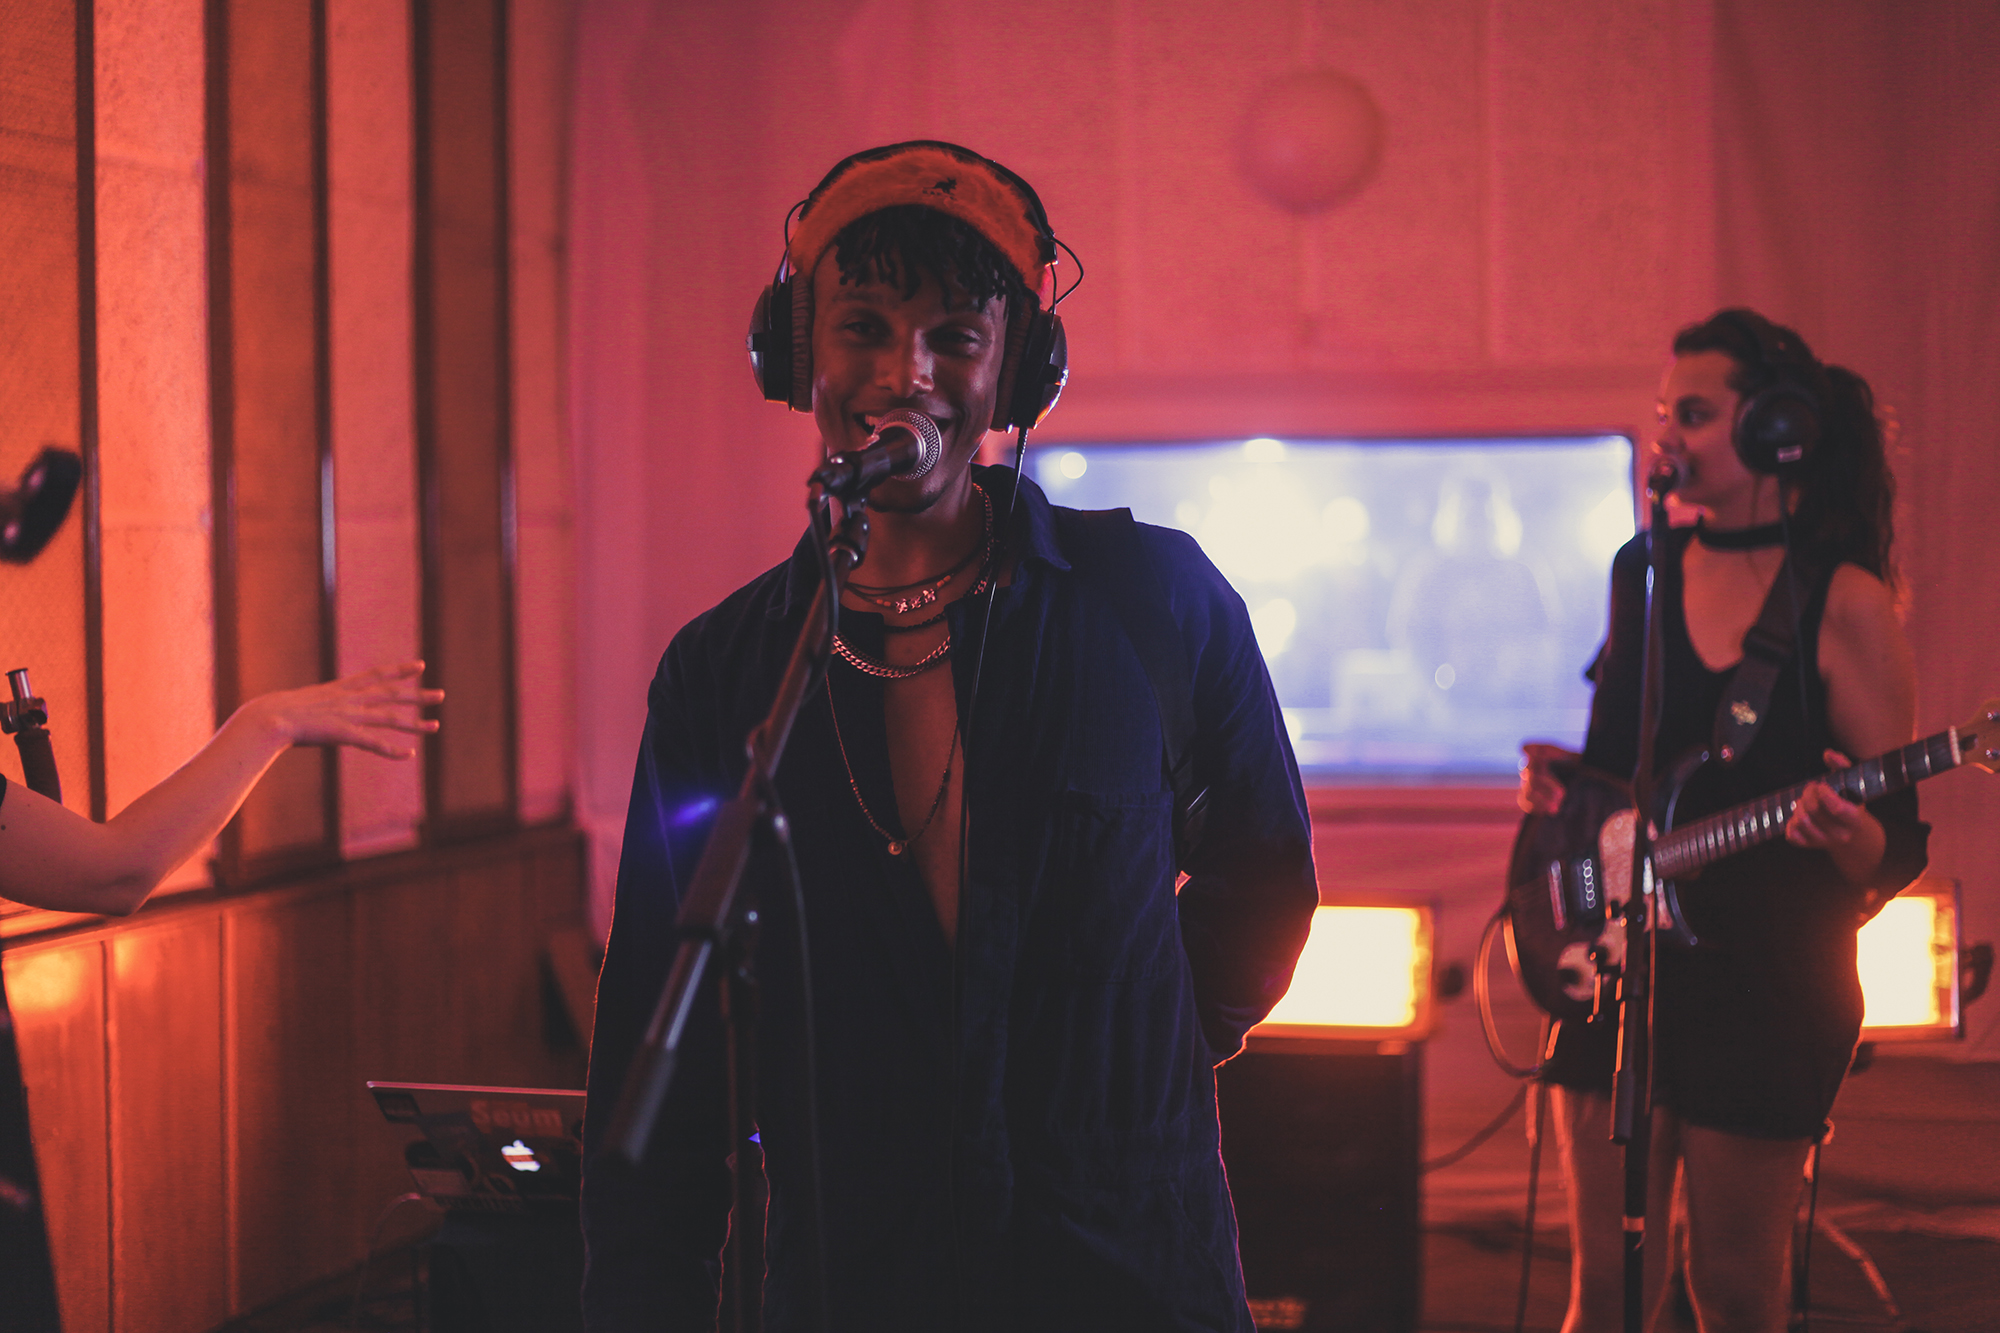 Pop Artist Rowan 'Gozi' Edwards Performs Live For Studio Sessions